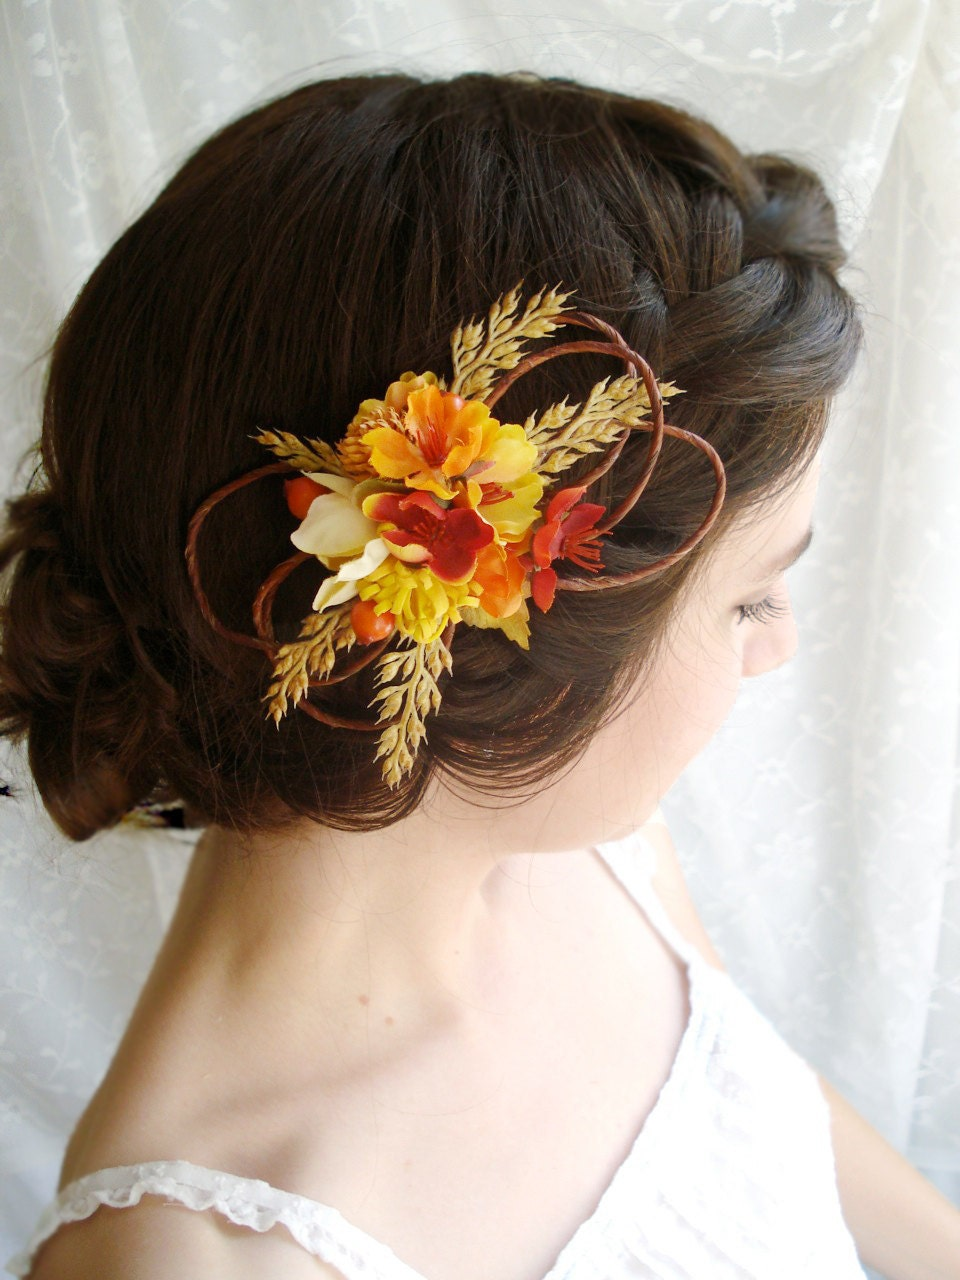 hair styles for brides autumn wedding hair clip barn a flower by thehoneycomb 2379 | il fullxfull.264786746